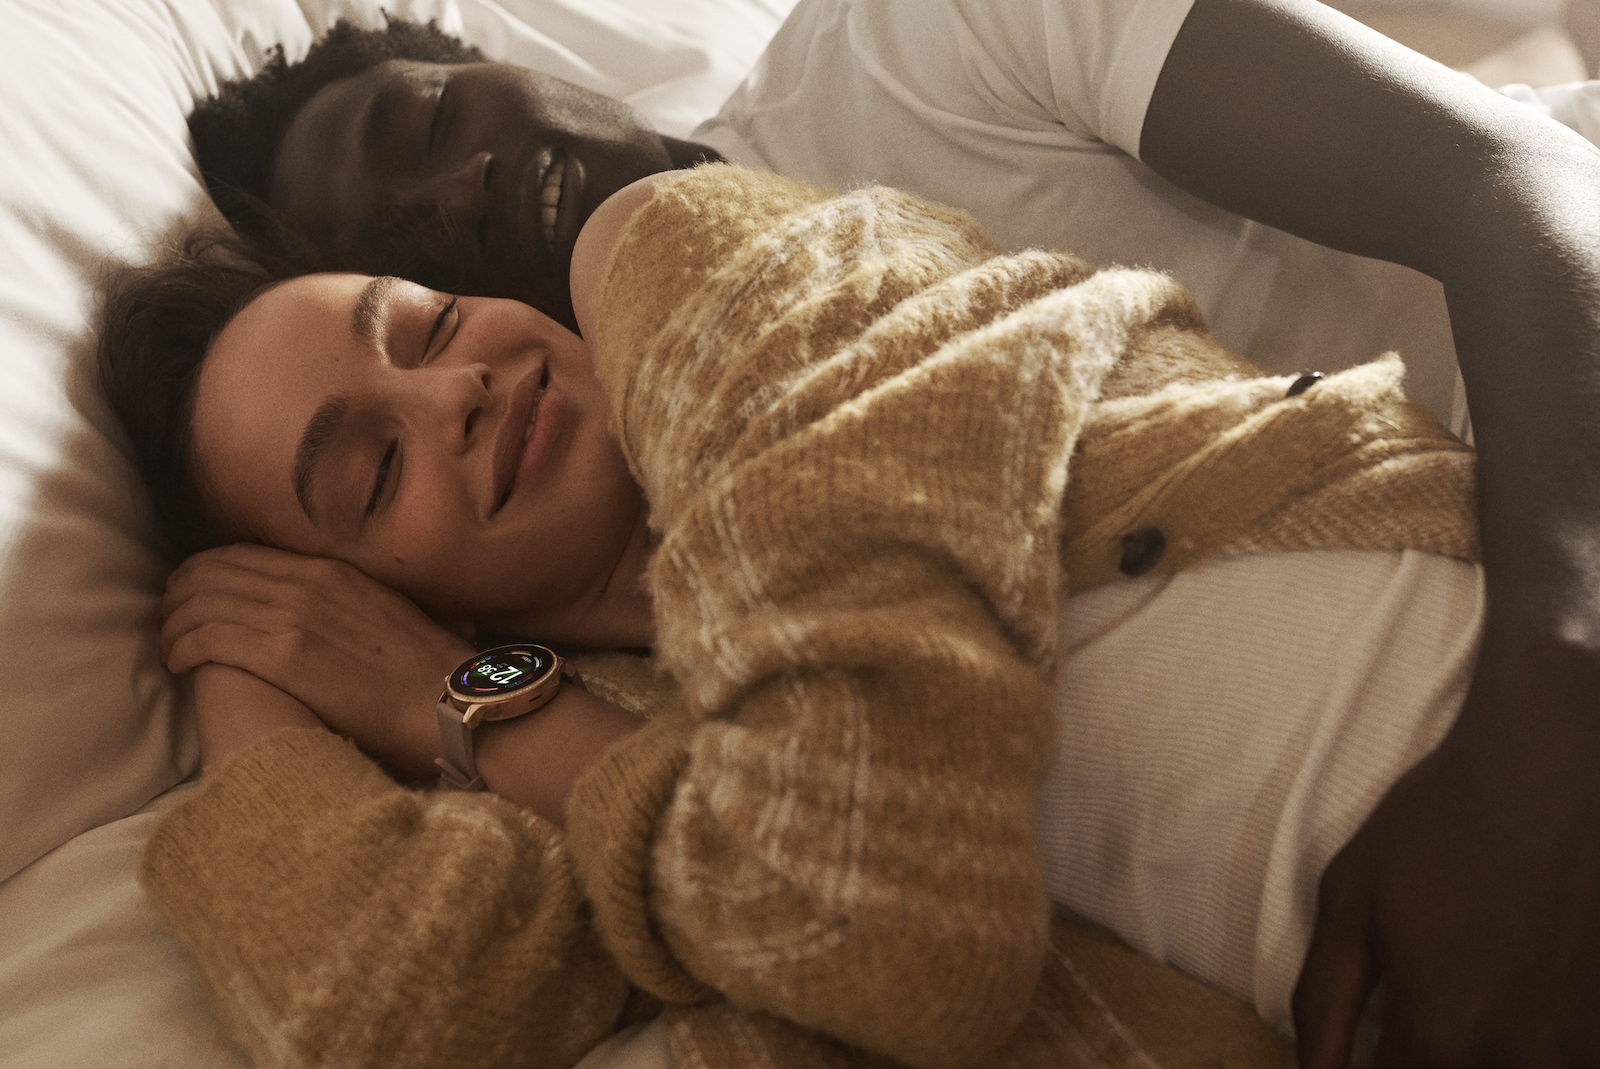 A man and a woman taking a nap with a Gen 6 smartwatch showing colorful charging rings. .